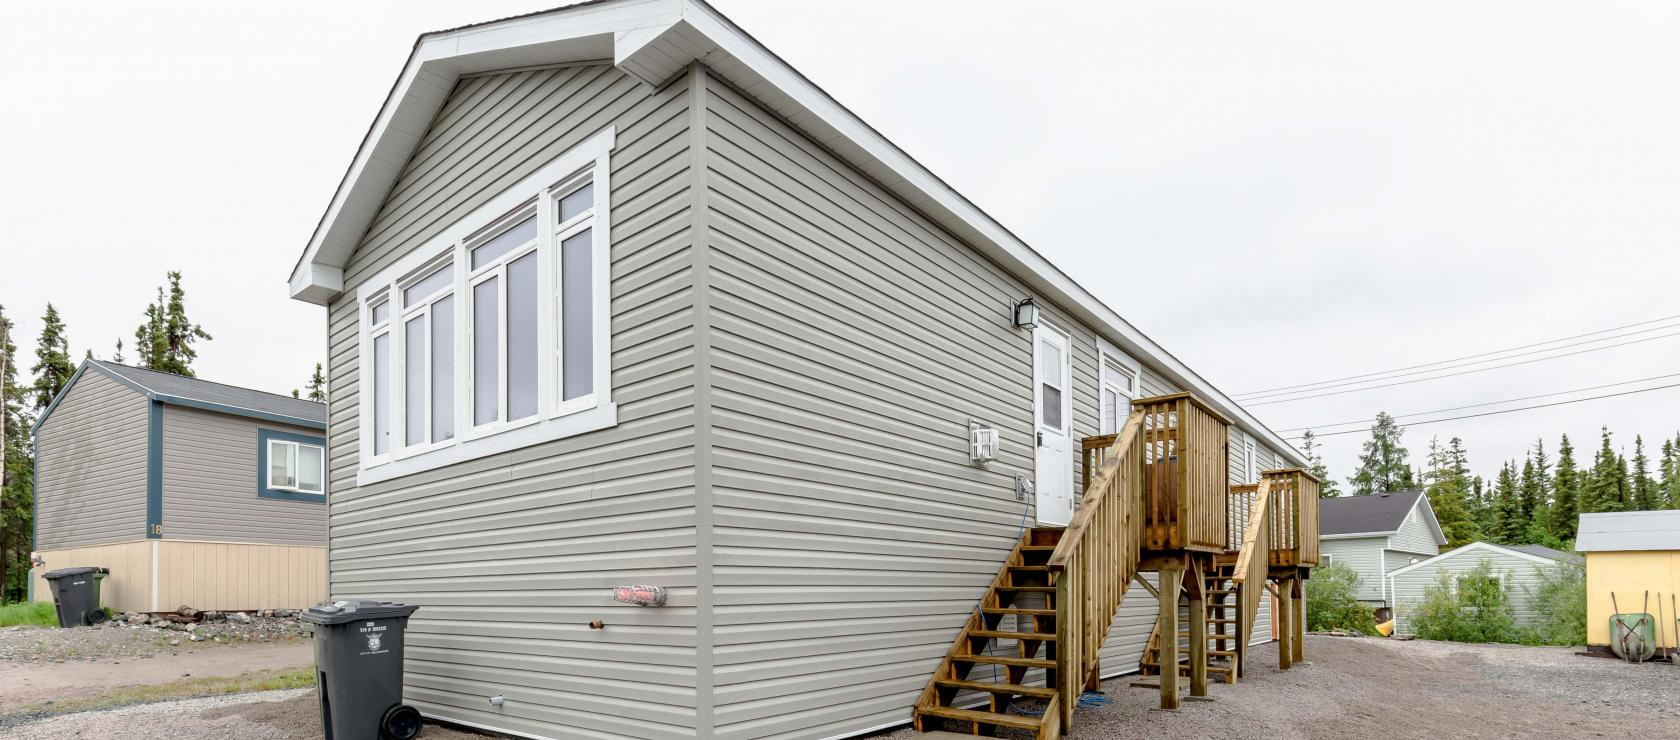 24 Rycon Place, Con Road, Yellowknife 2